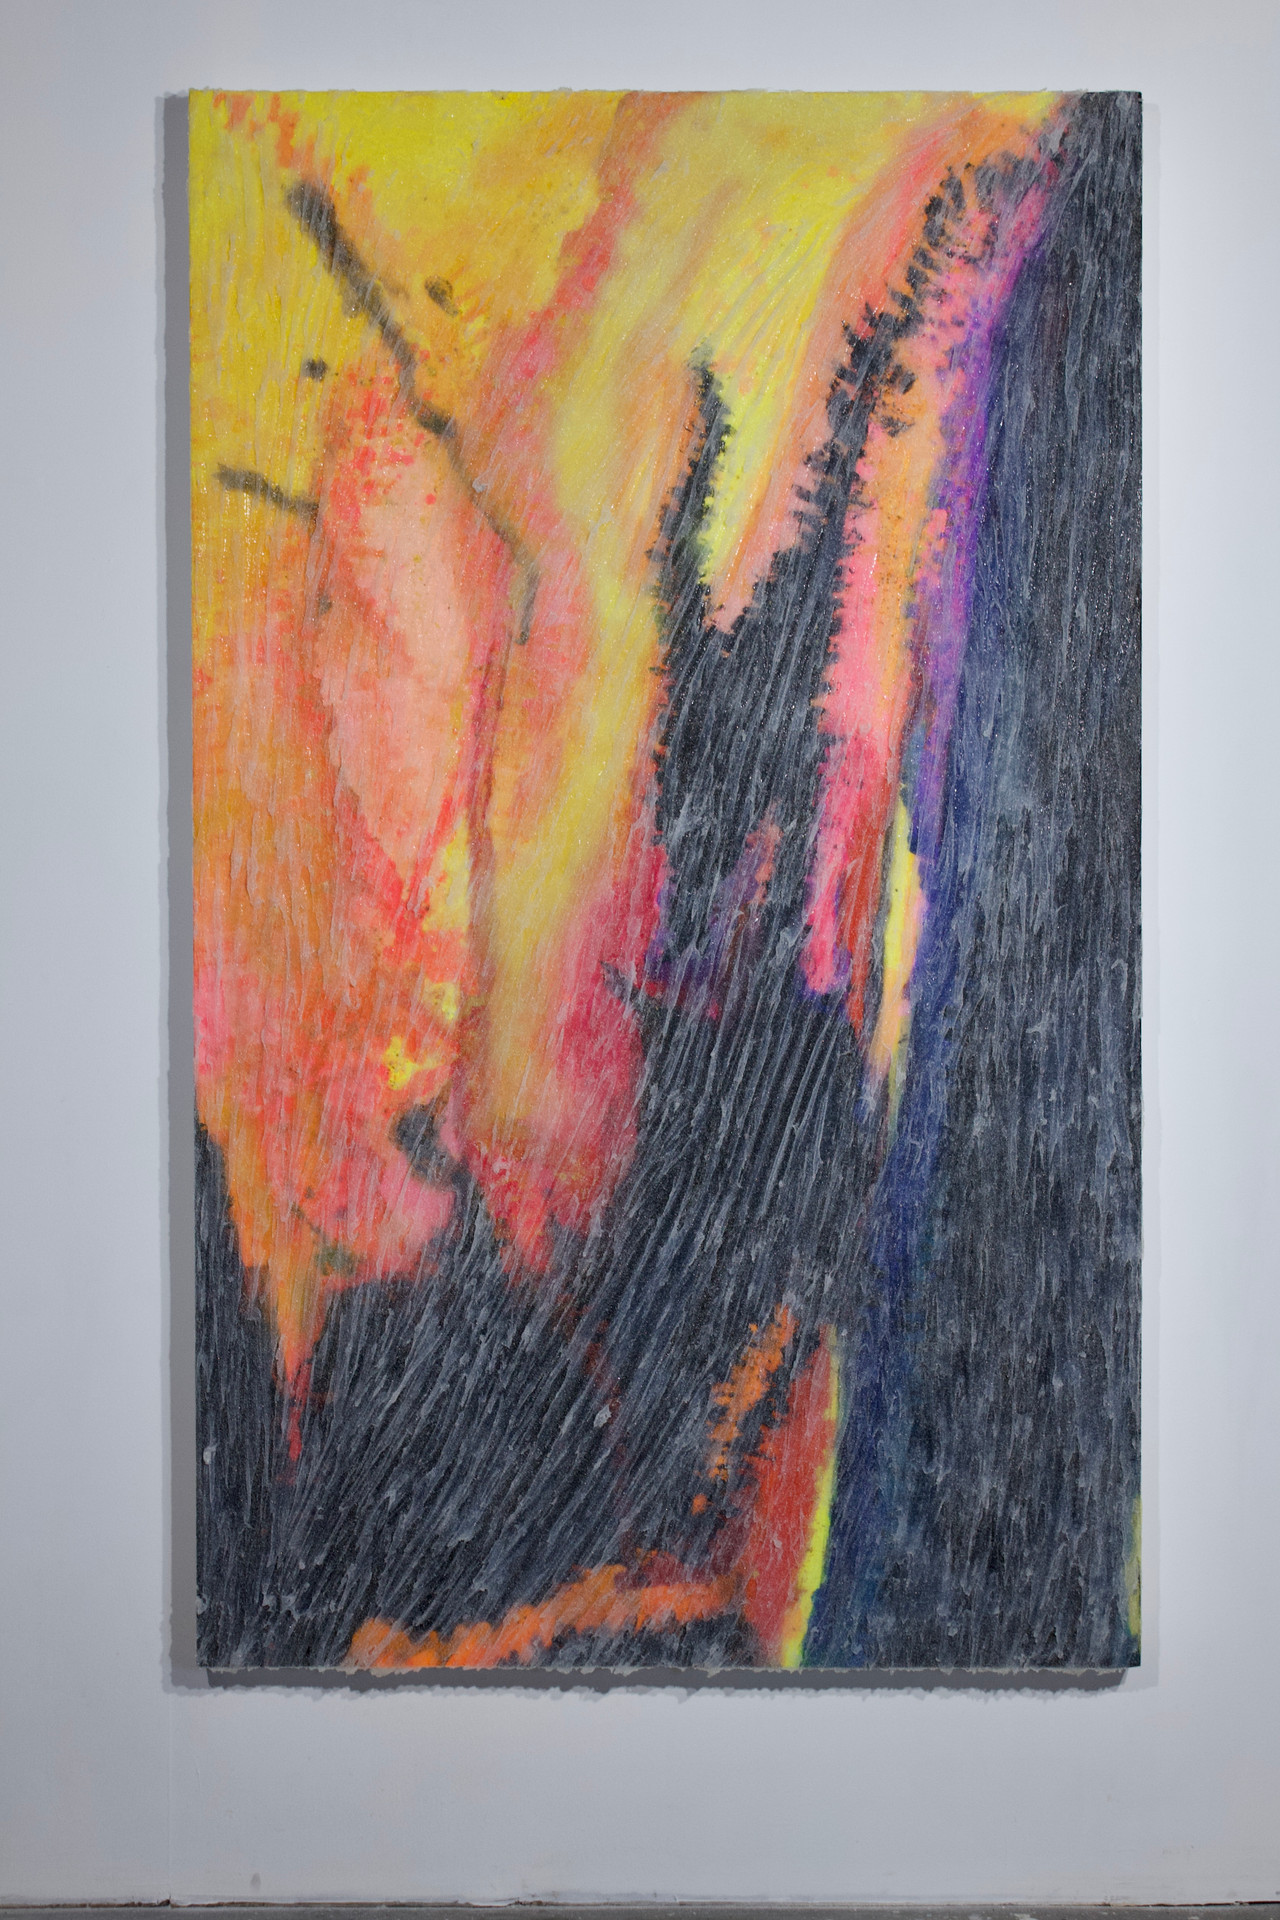 """2020  46"""" x 77"""" x 2.5"""" canvas acrylic paint, silicone, glass oxide  Available $900"""